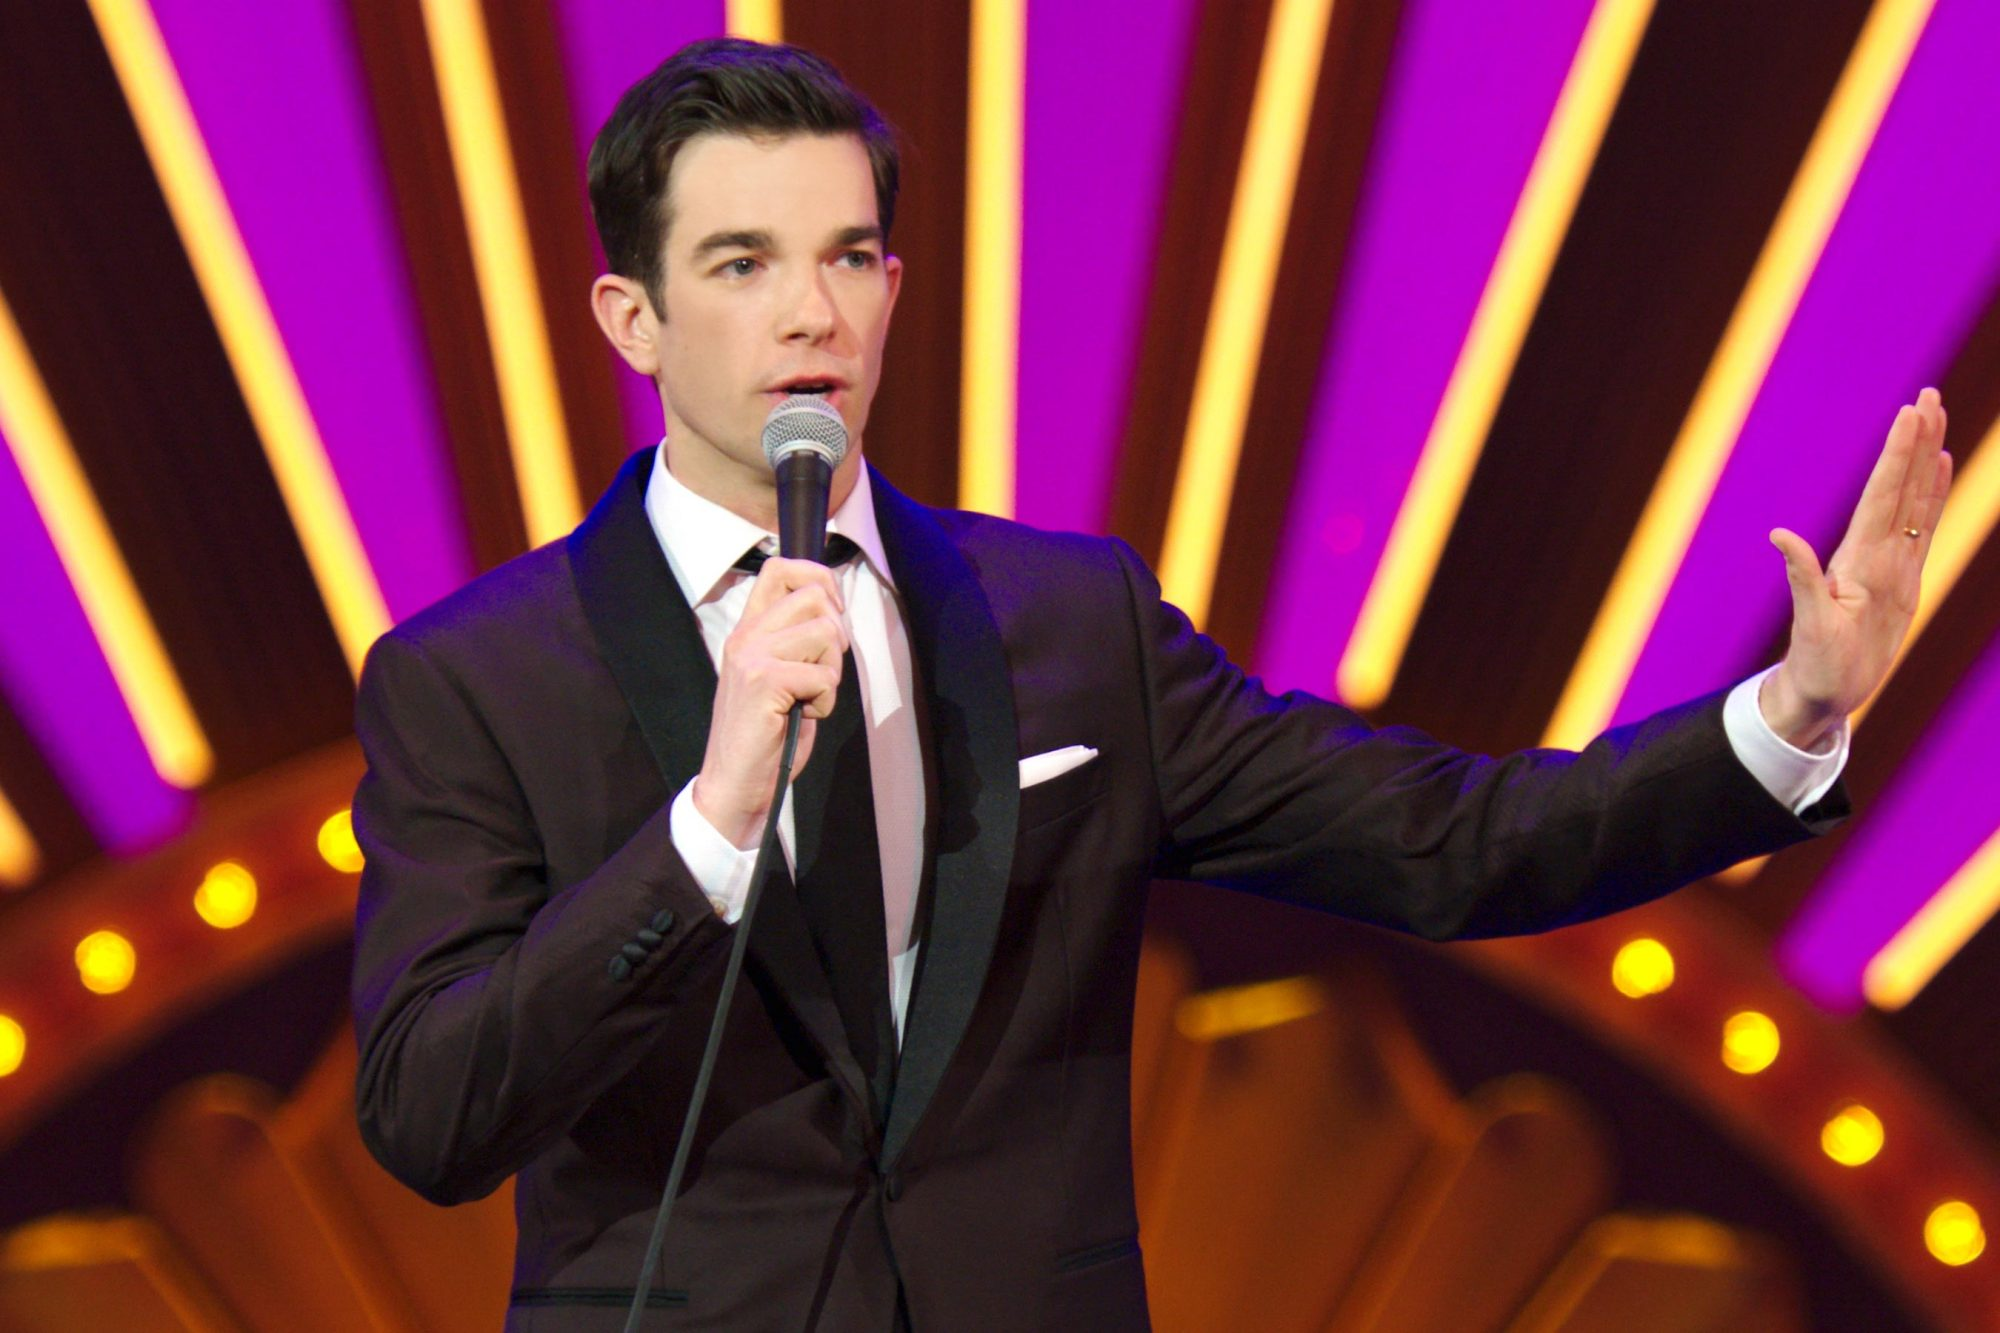 john_mulaney_kid_gorgeous_3840x2160_000000_R